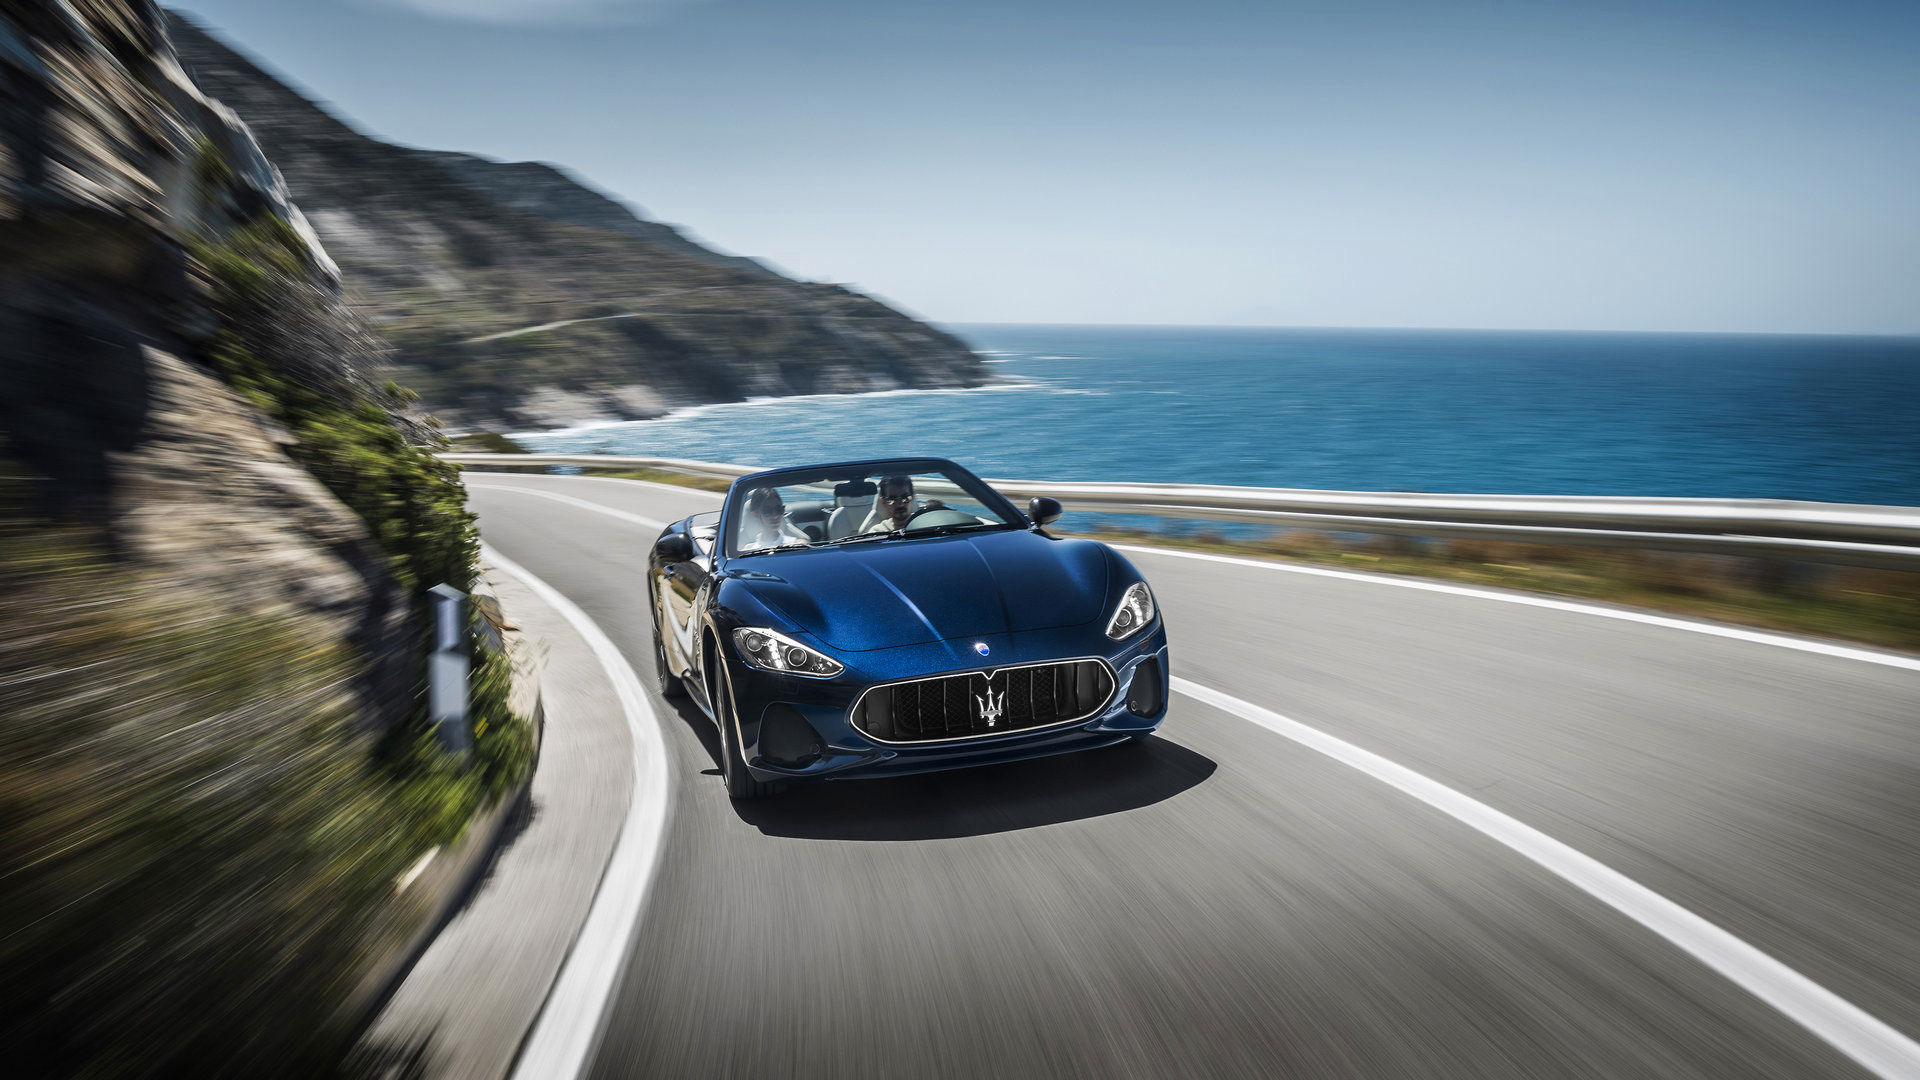 Maserati GranCabrio - GranCabrio front view, riding by the sea